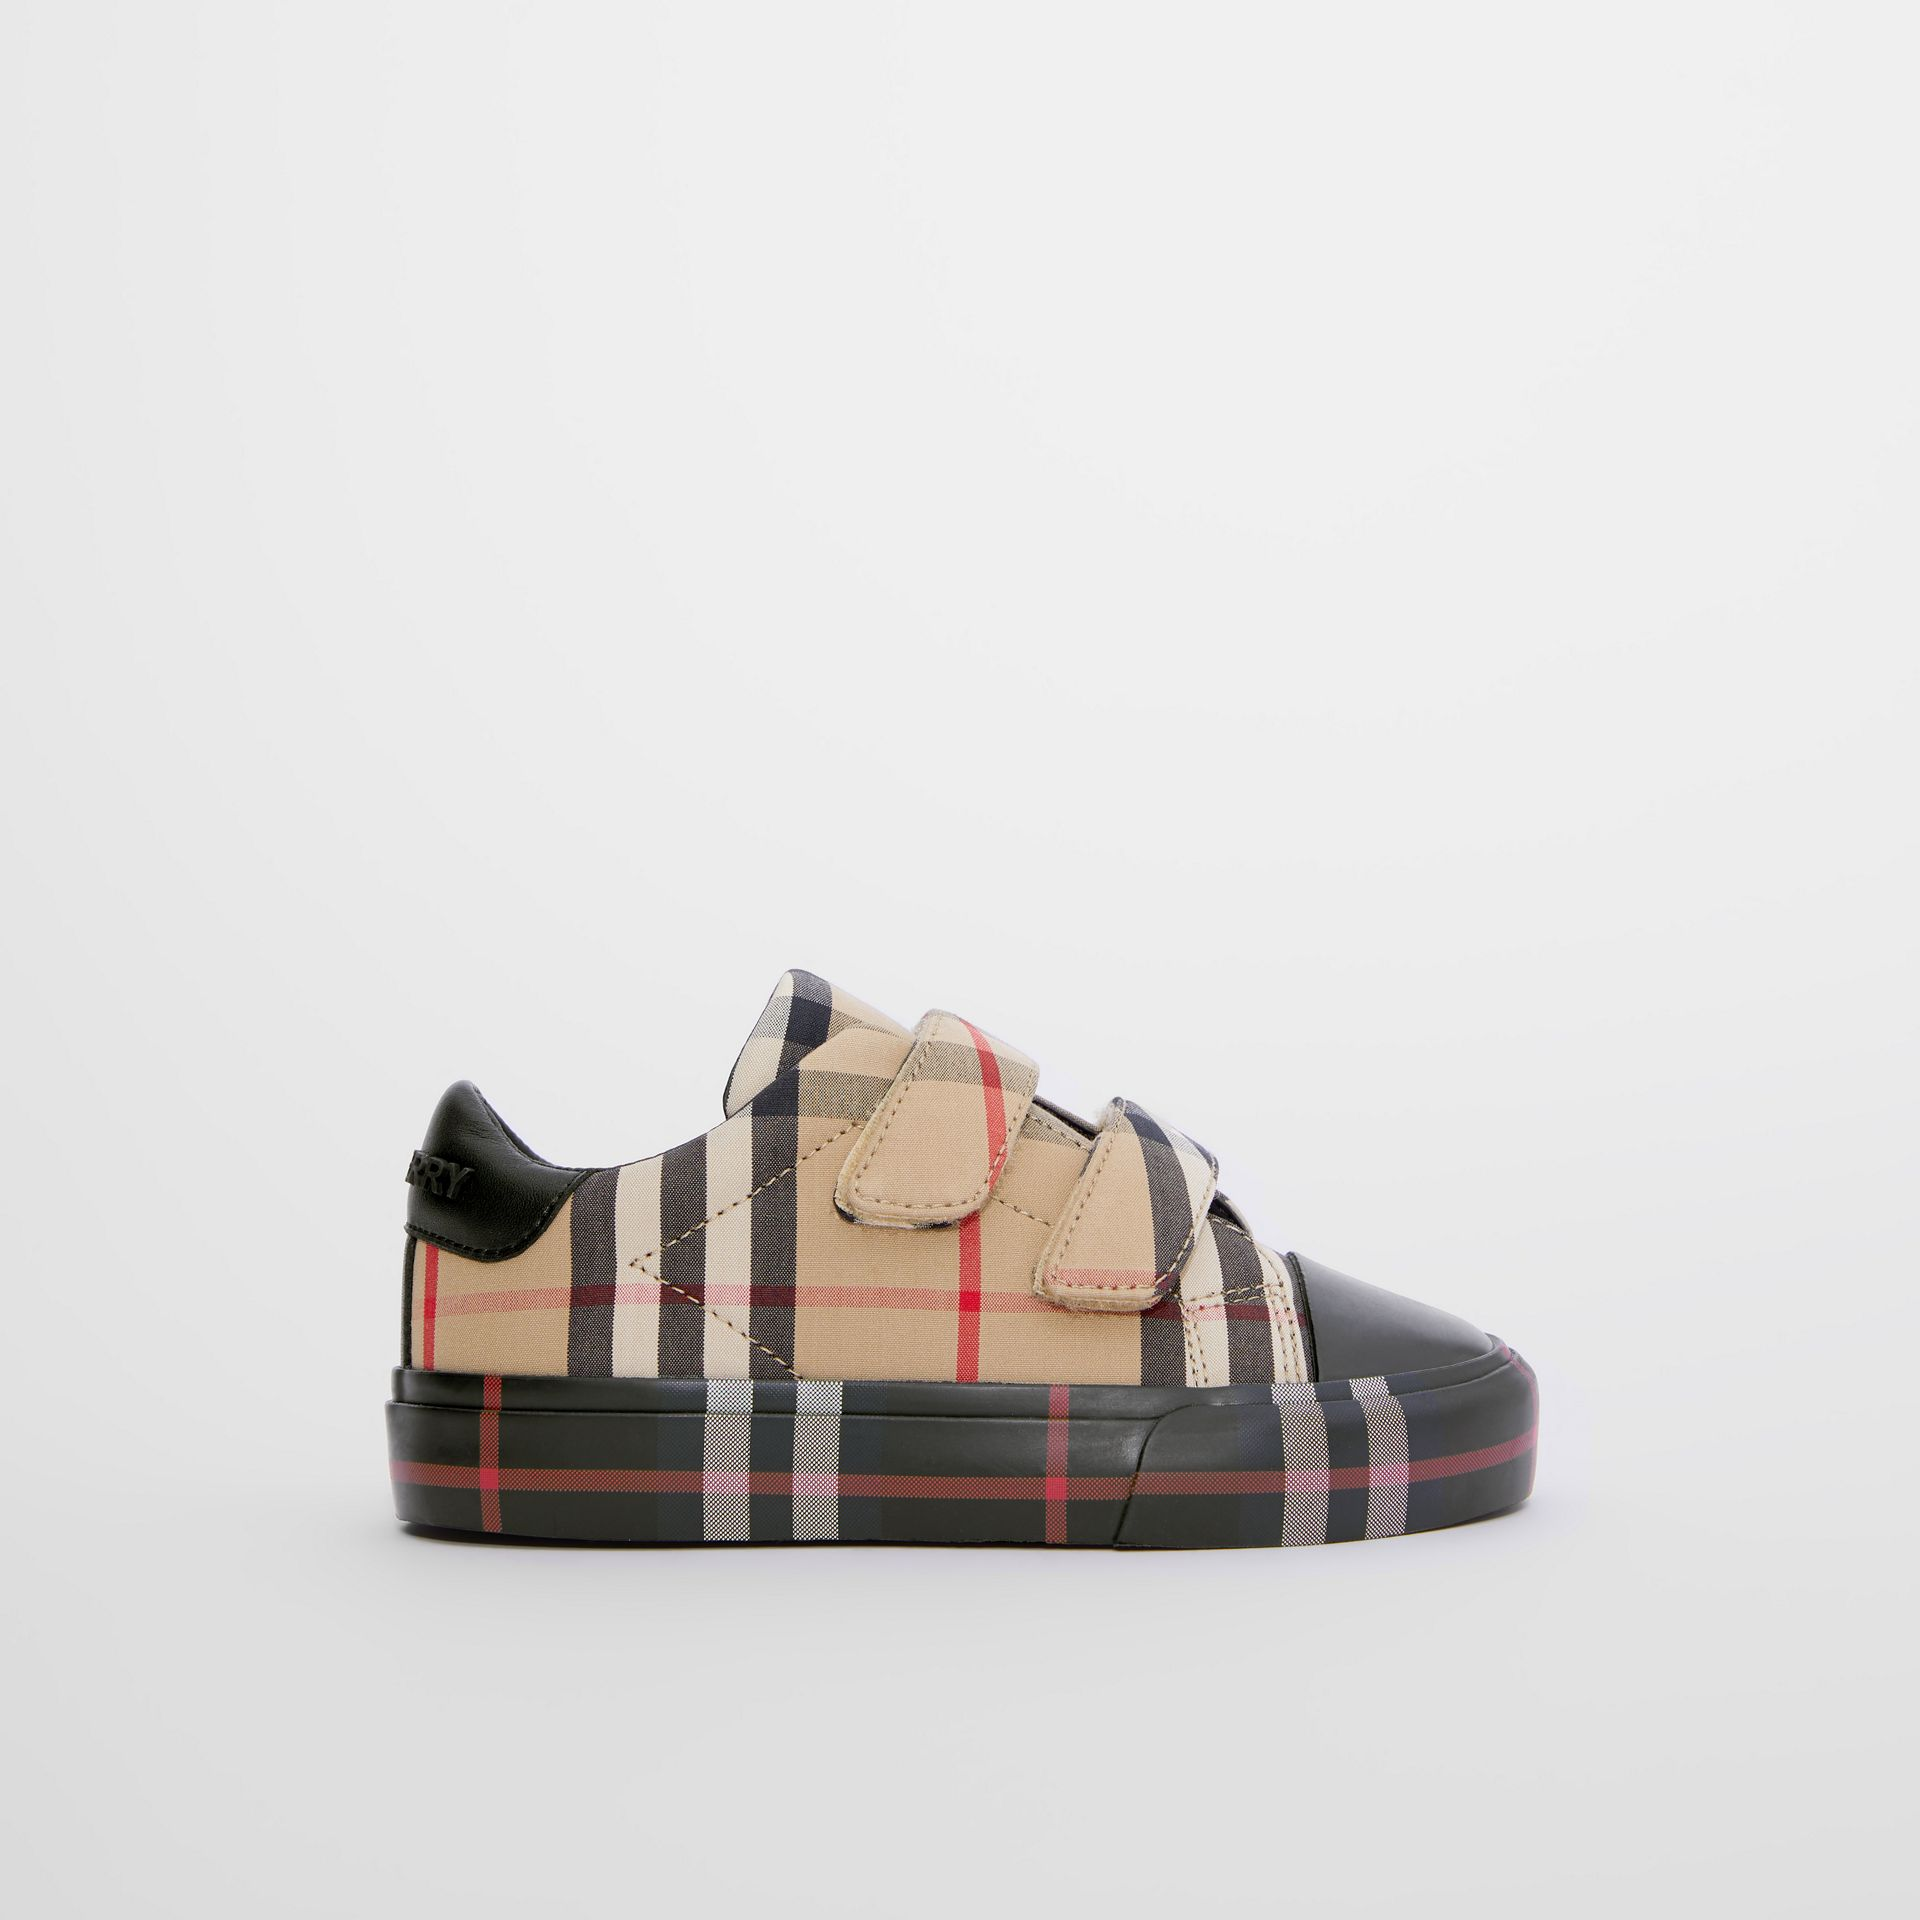 Sneakers en coton check (Beige D'archive/noir) - Enfant | Burberry Canada - photo de la galerie 3